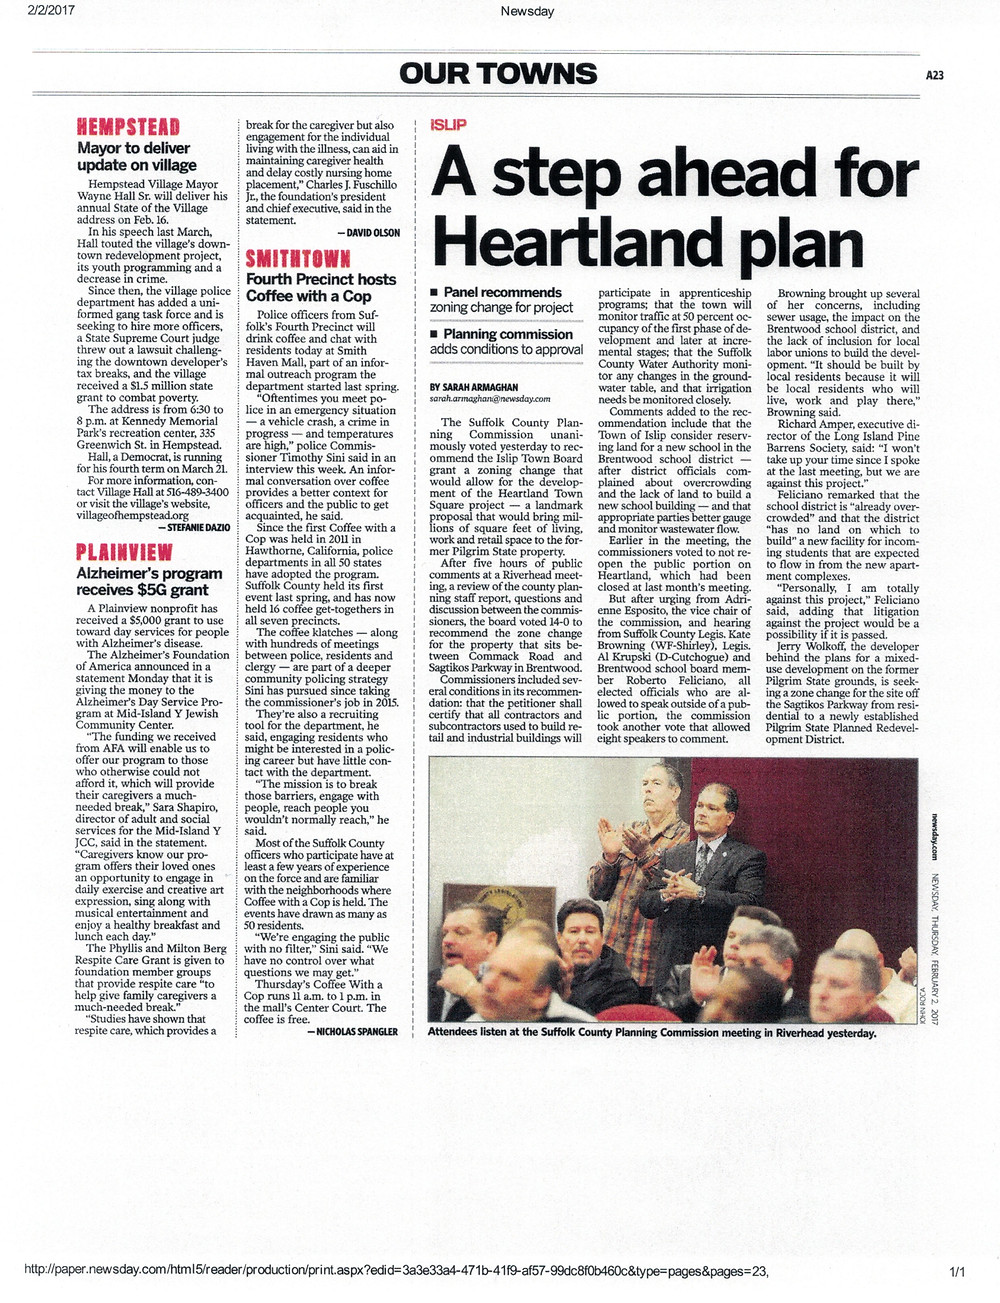 The Article As Featured In Newsday